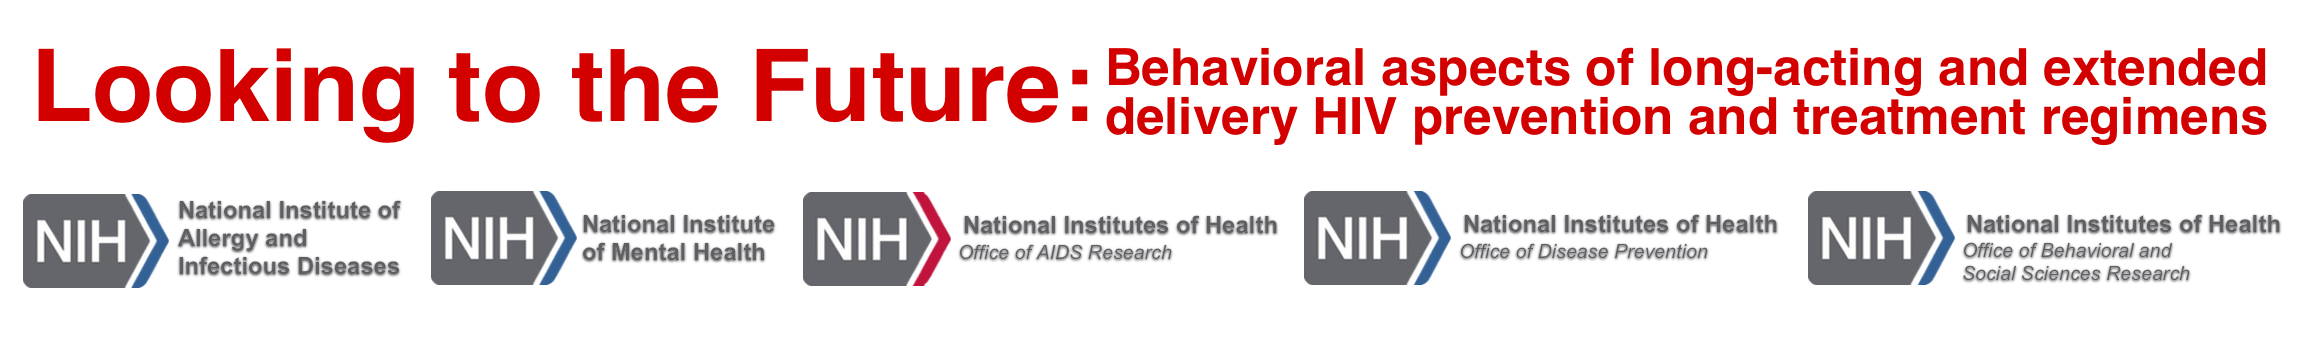 Looking to the Future: Behavioral aspects of long-acting and extended delivery HIV prevention and treatment regimens